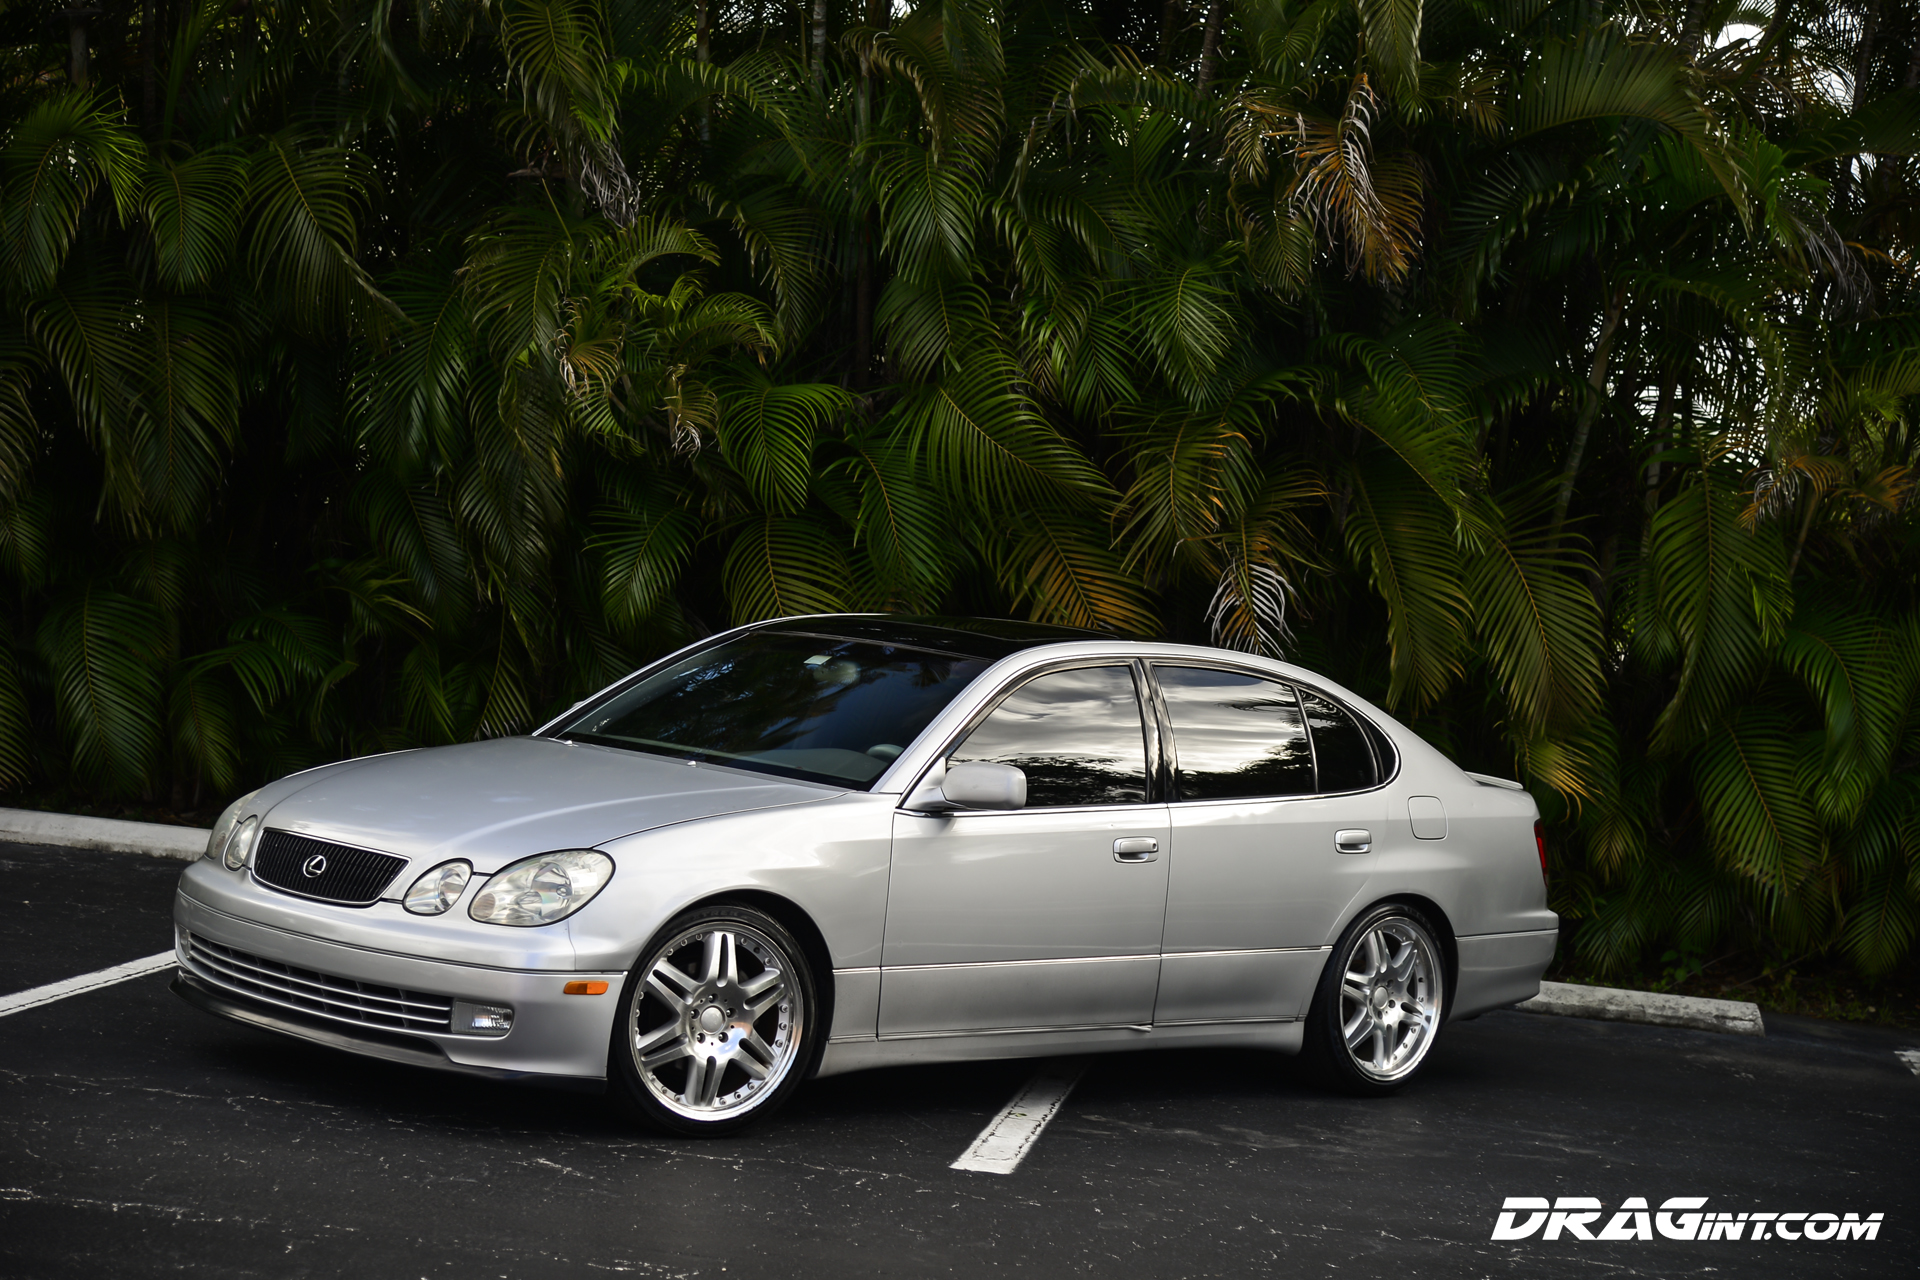 hight resolution of 1998 lexus gs300 mildly upgraded with complete aristo twin turbo conversion plus modifications to enhances its looks and ride classic pure silver over